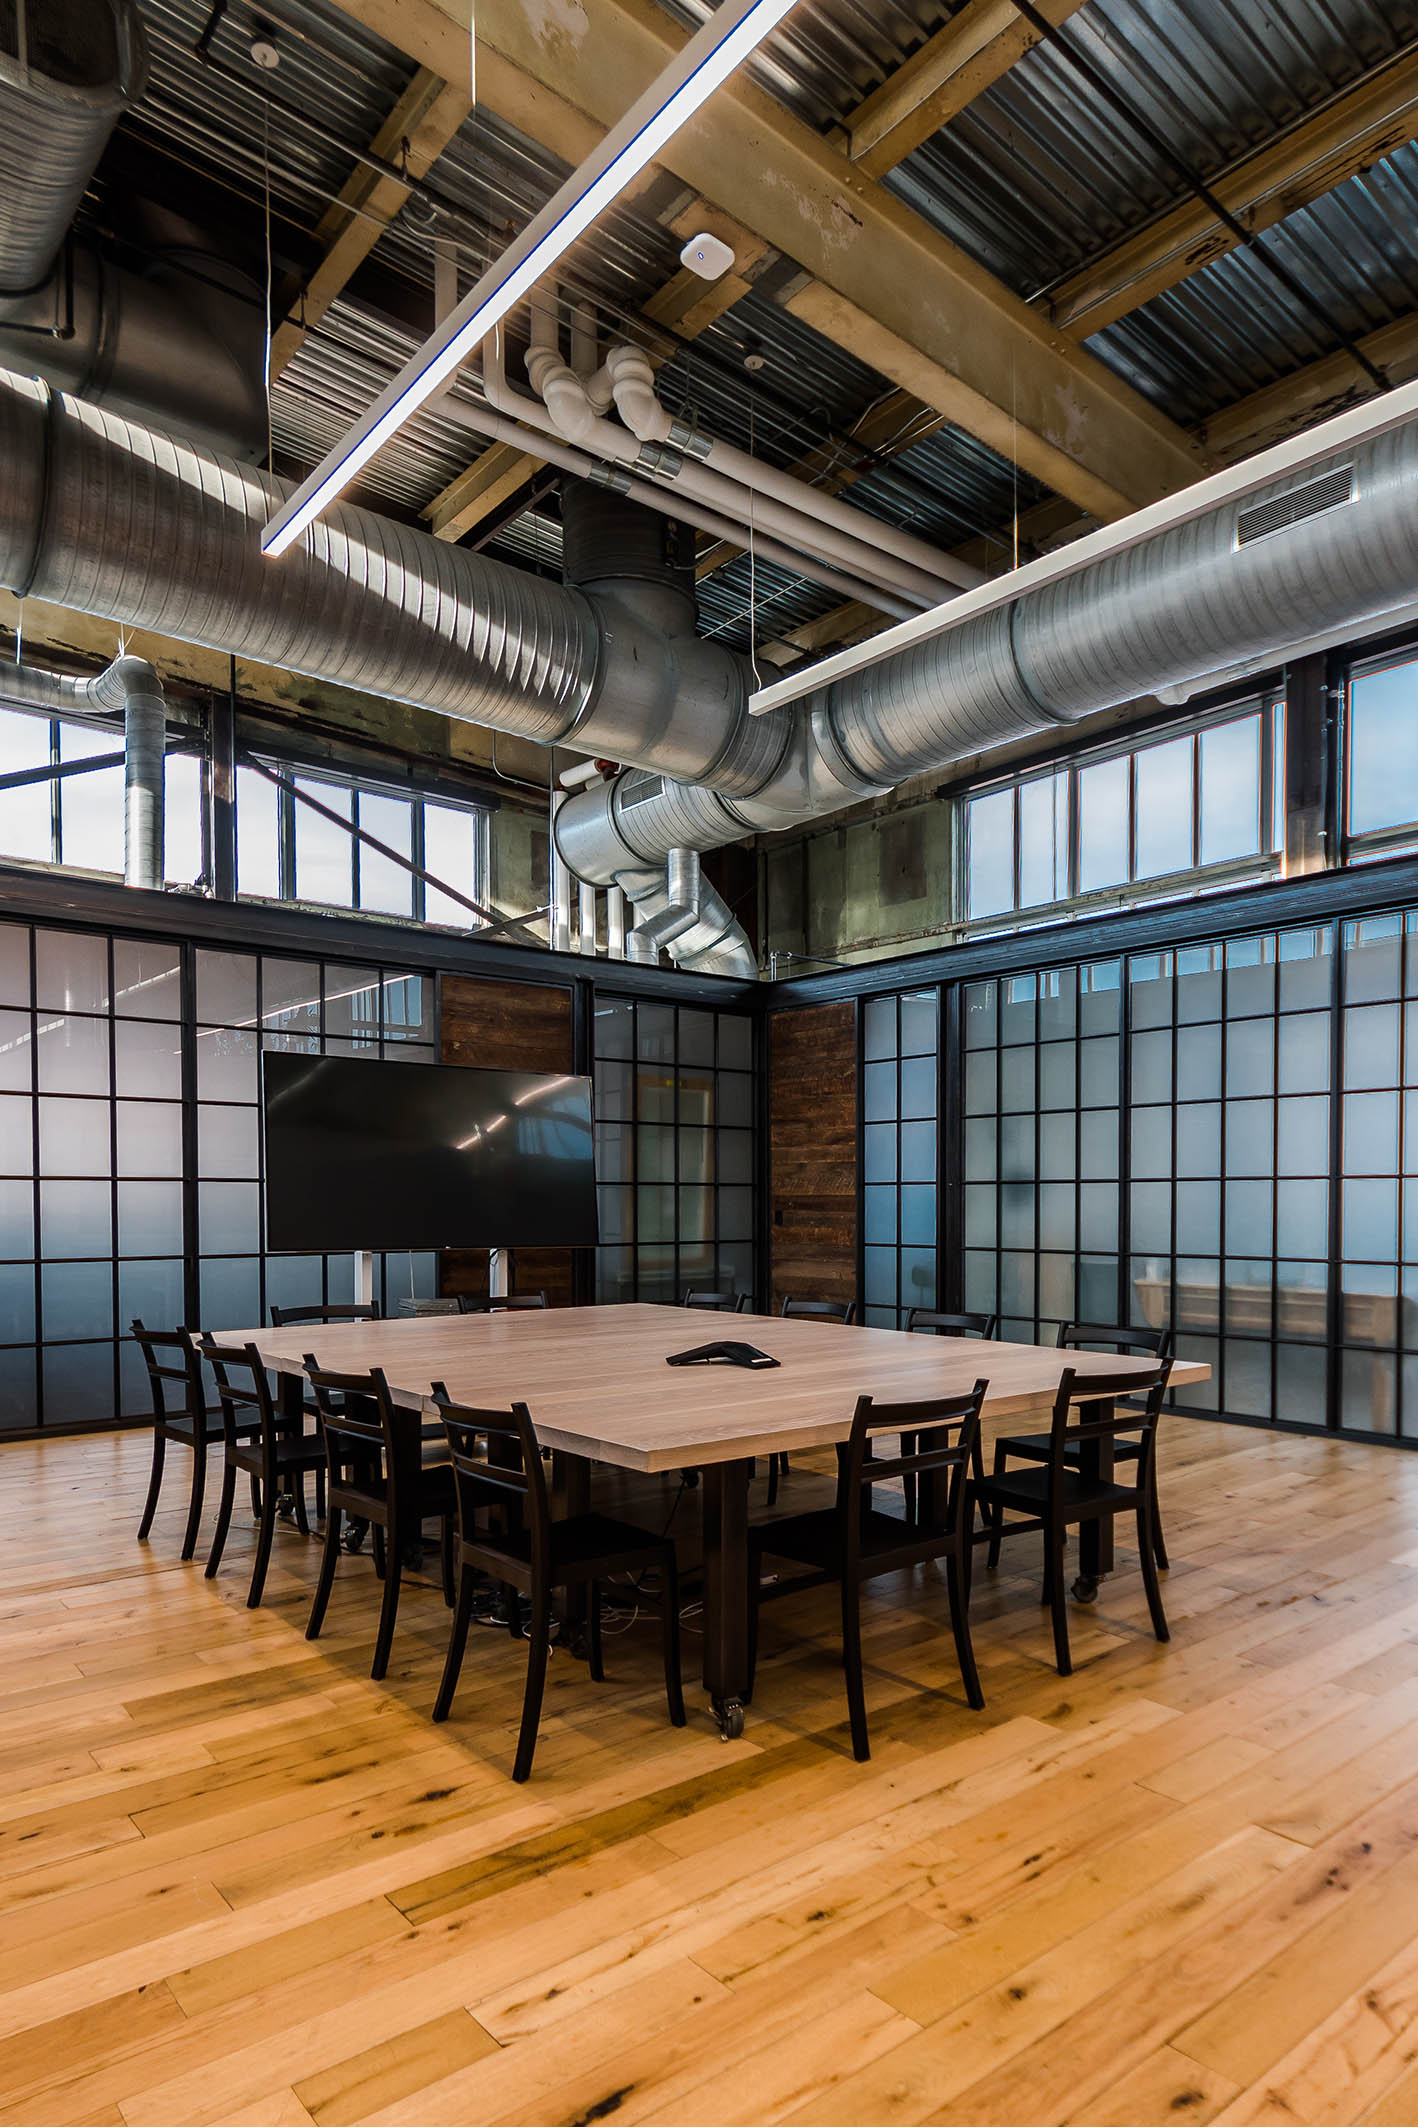 NewStudio Architecture collaborated with URBN to design the Terrain meeting area in the adaptive reuse of the Navy Yard Building 18 Annex